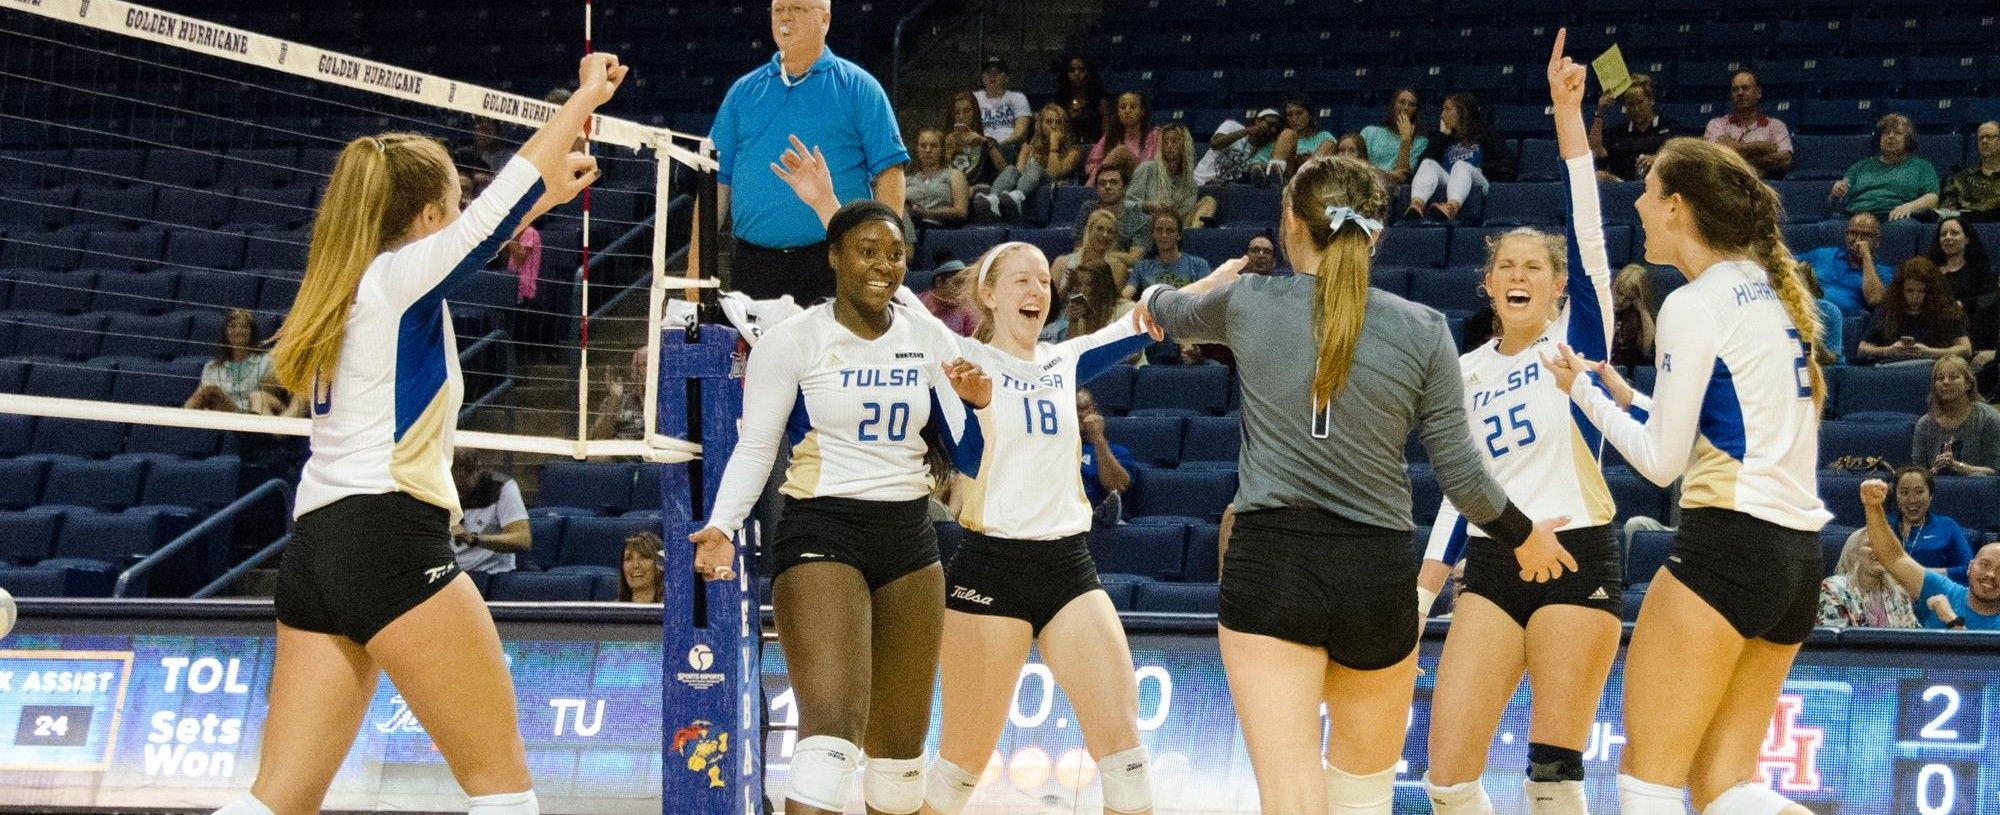 Tulsa Announces 2018 Volleyball Schedule Volleyball News Volleyball Team Volleyball